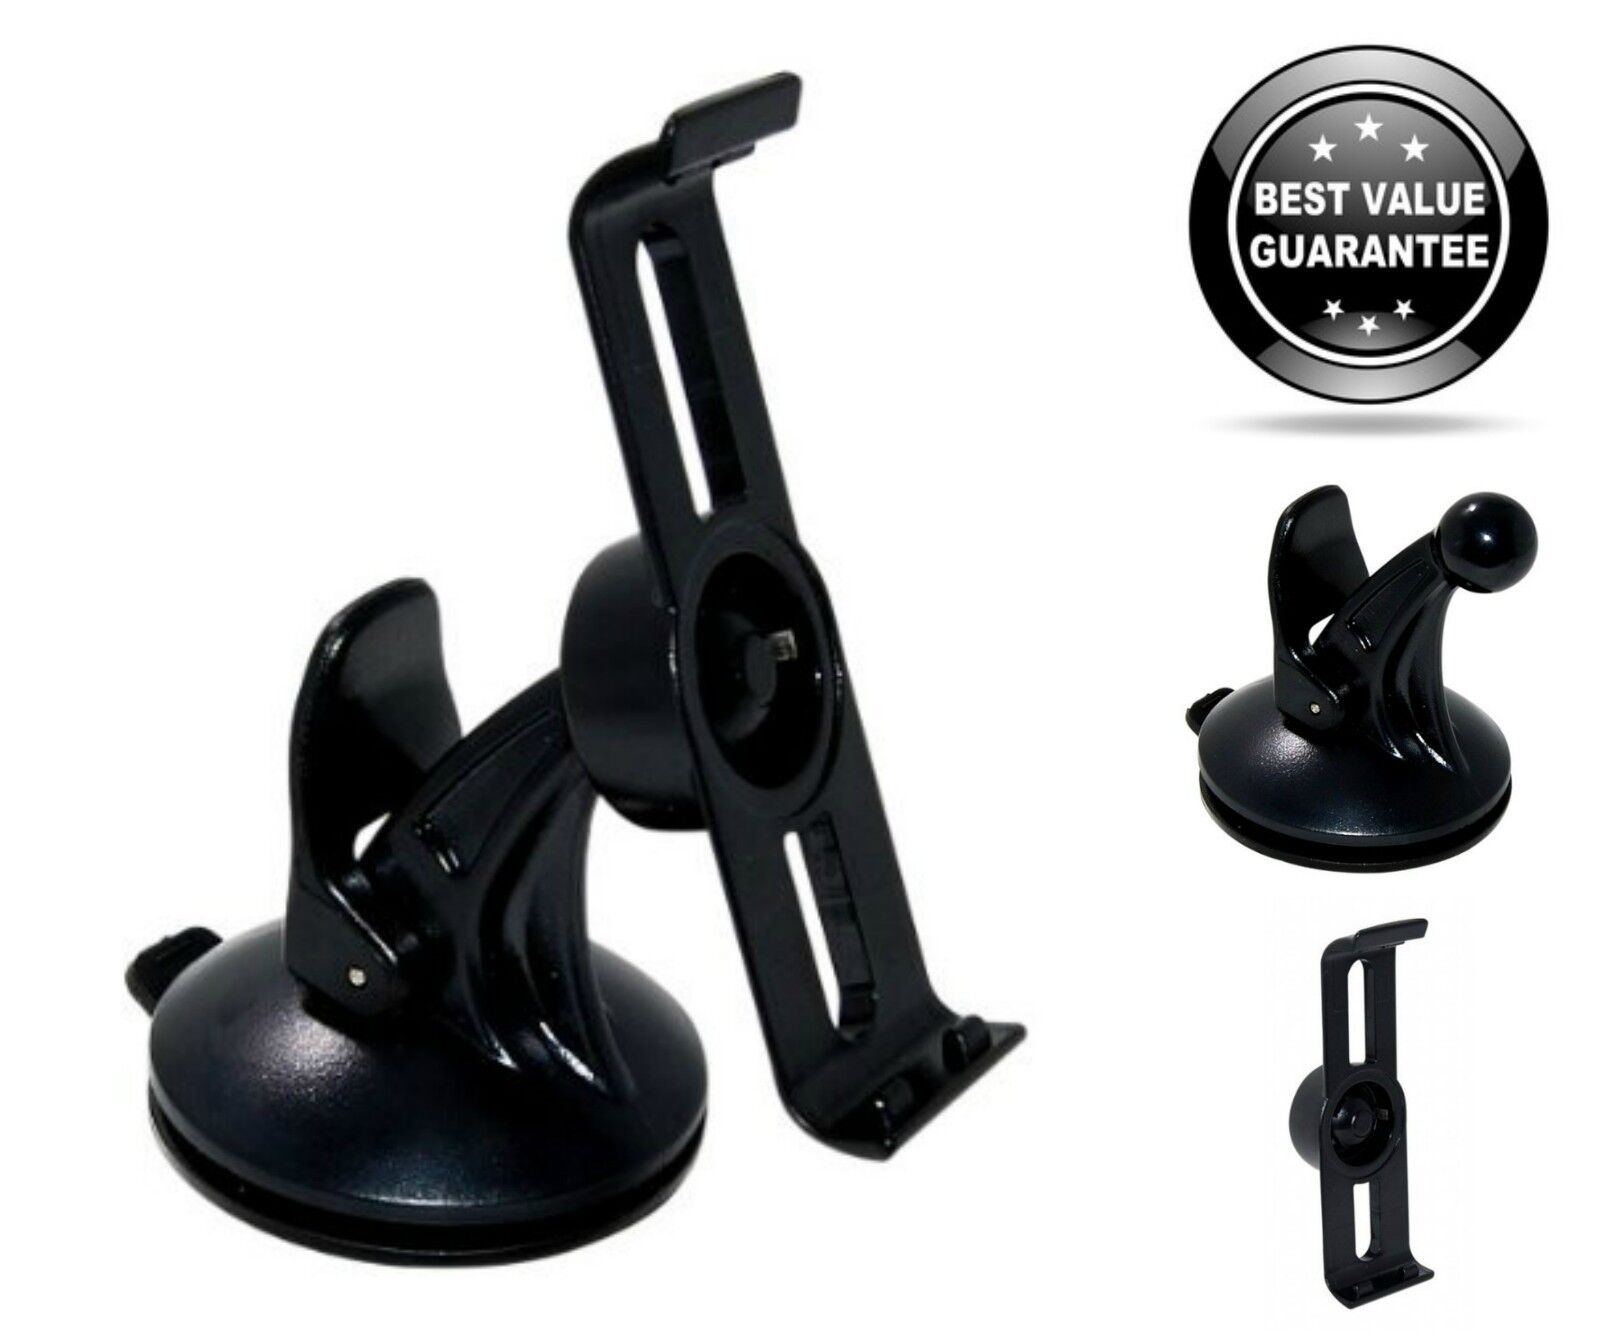 Windshield GPS Mount Rotating Tilting Stand Garmin Nuvi 1450 1490 w/ Suction Cup